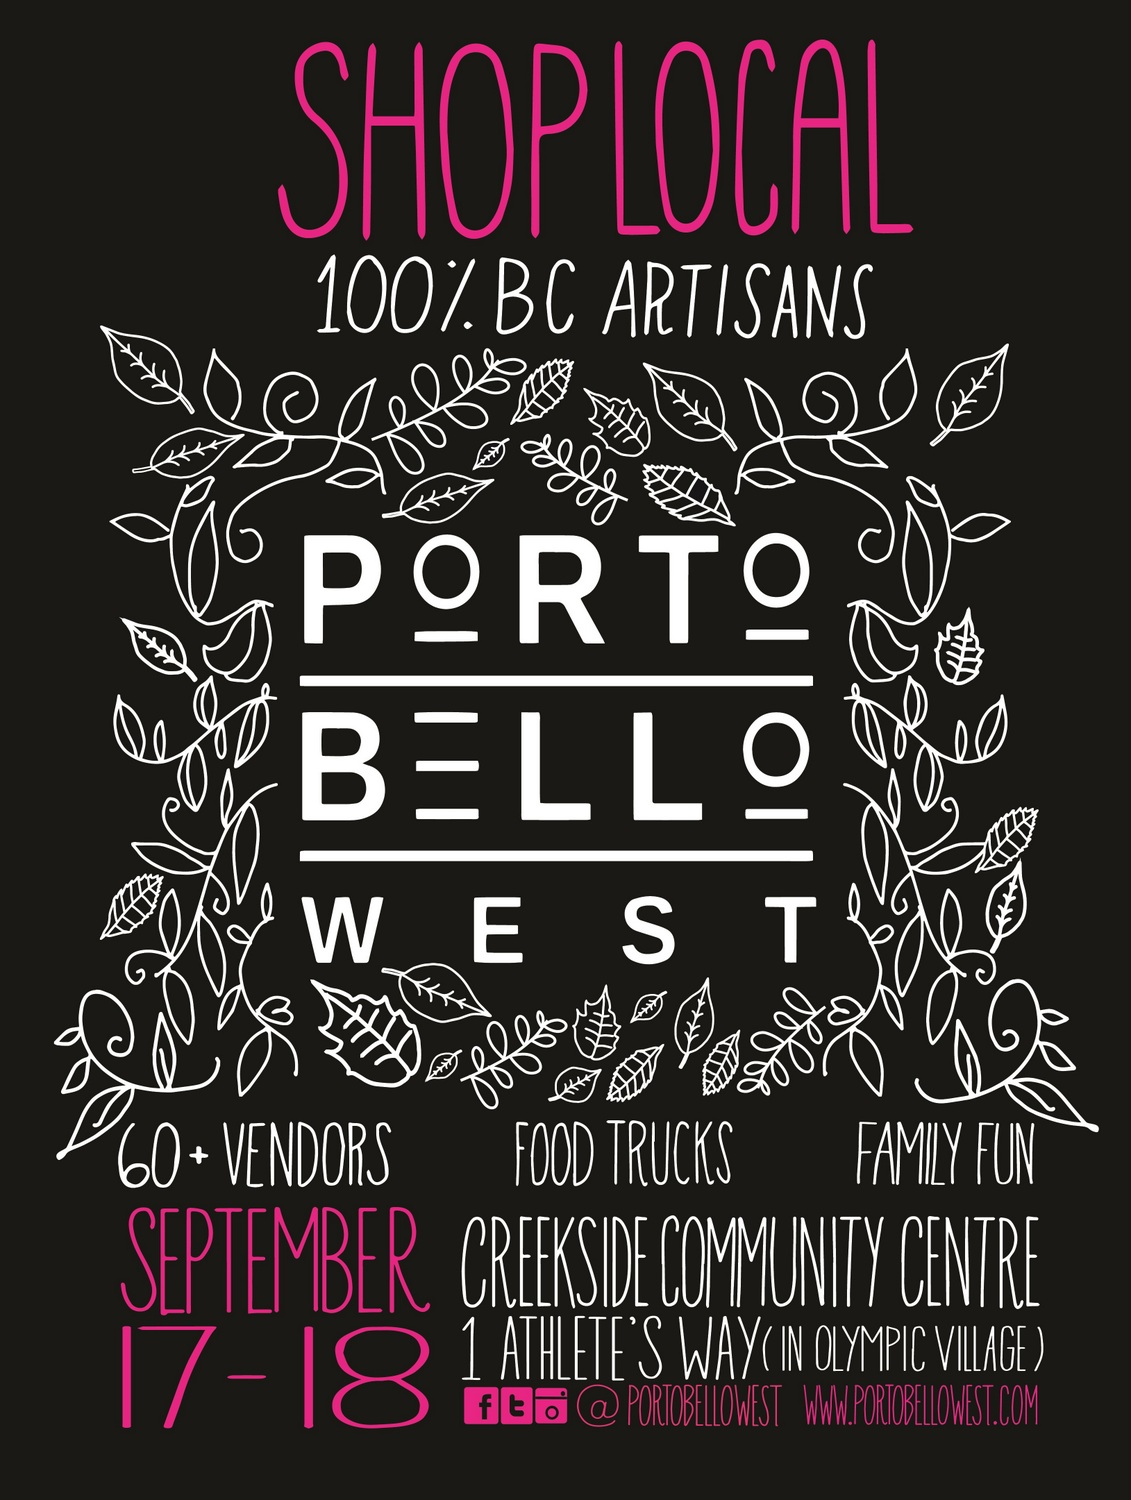 Portobello West - 10th Year Anniversary Poster